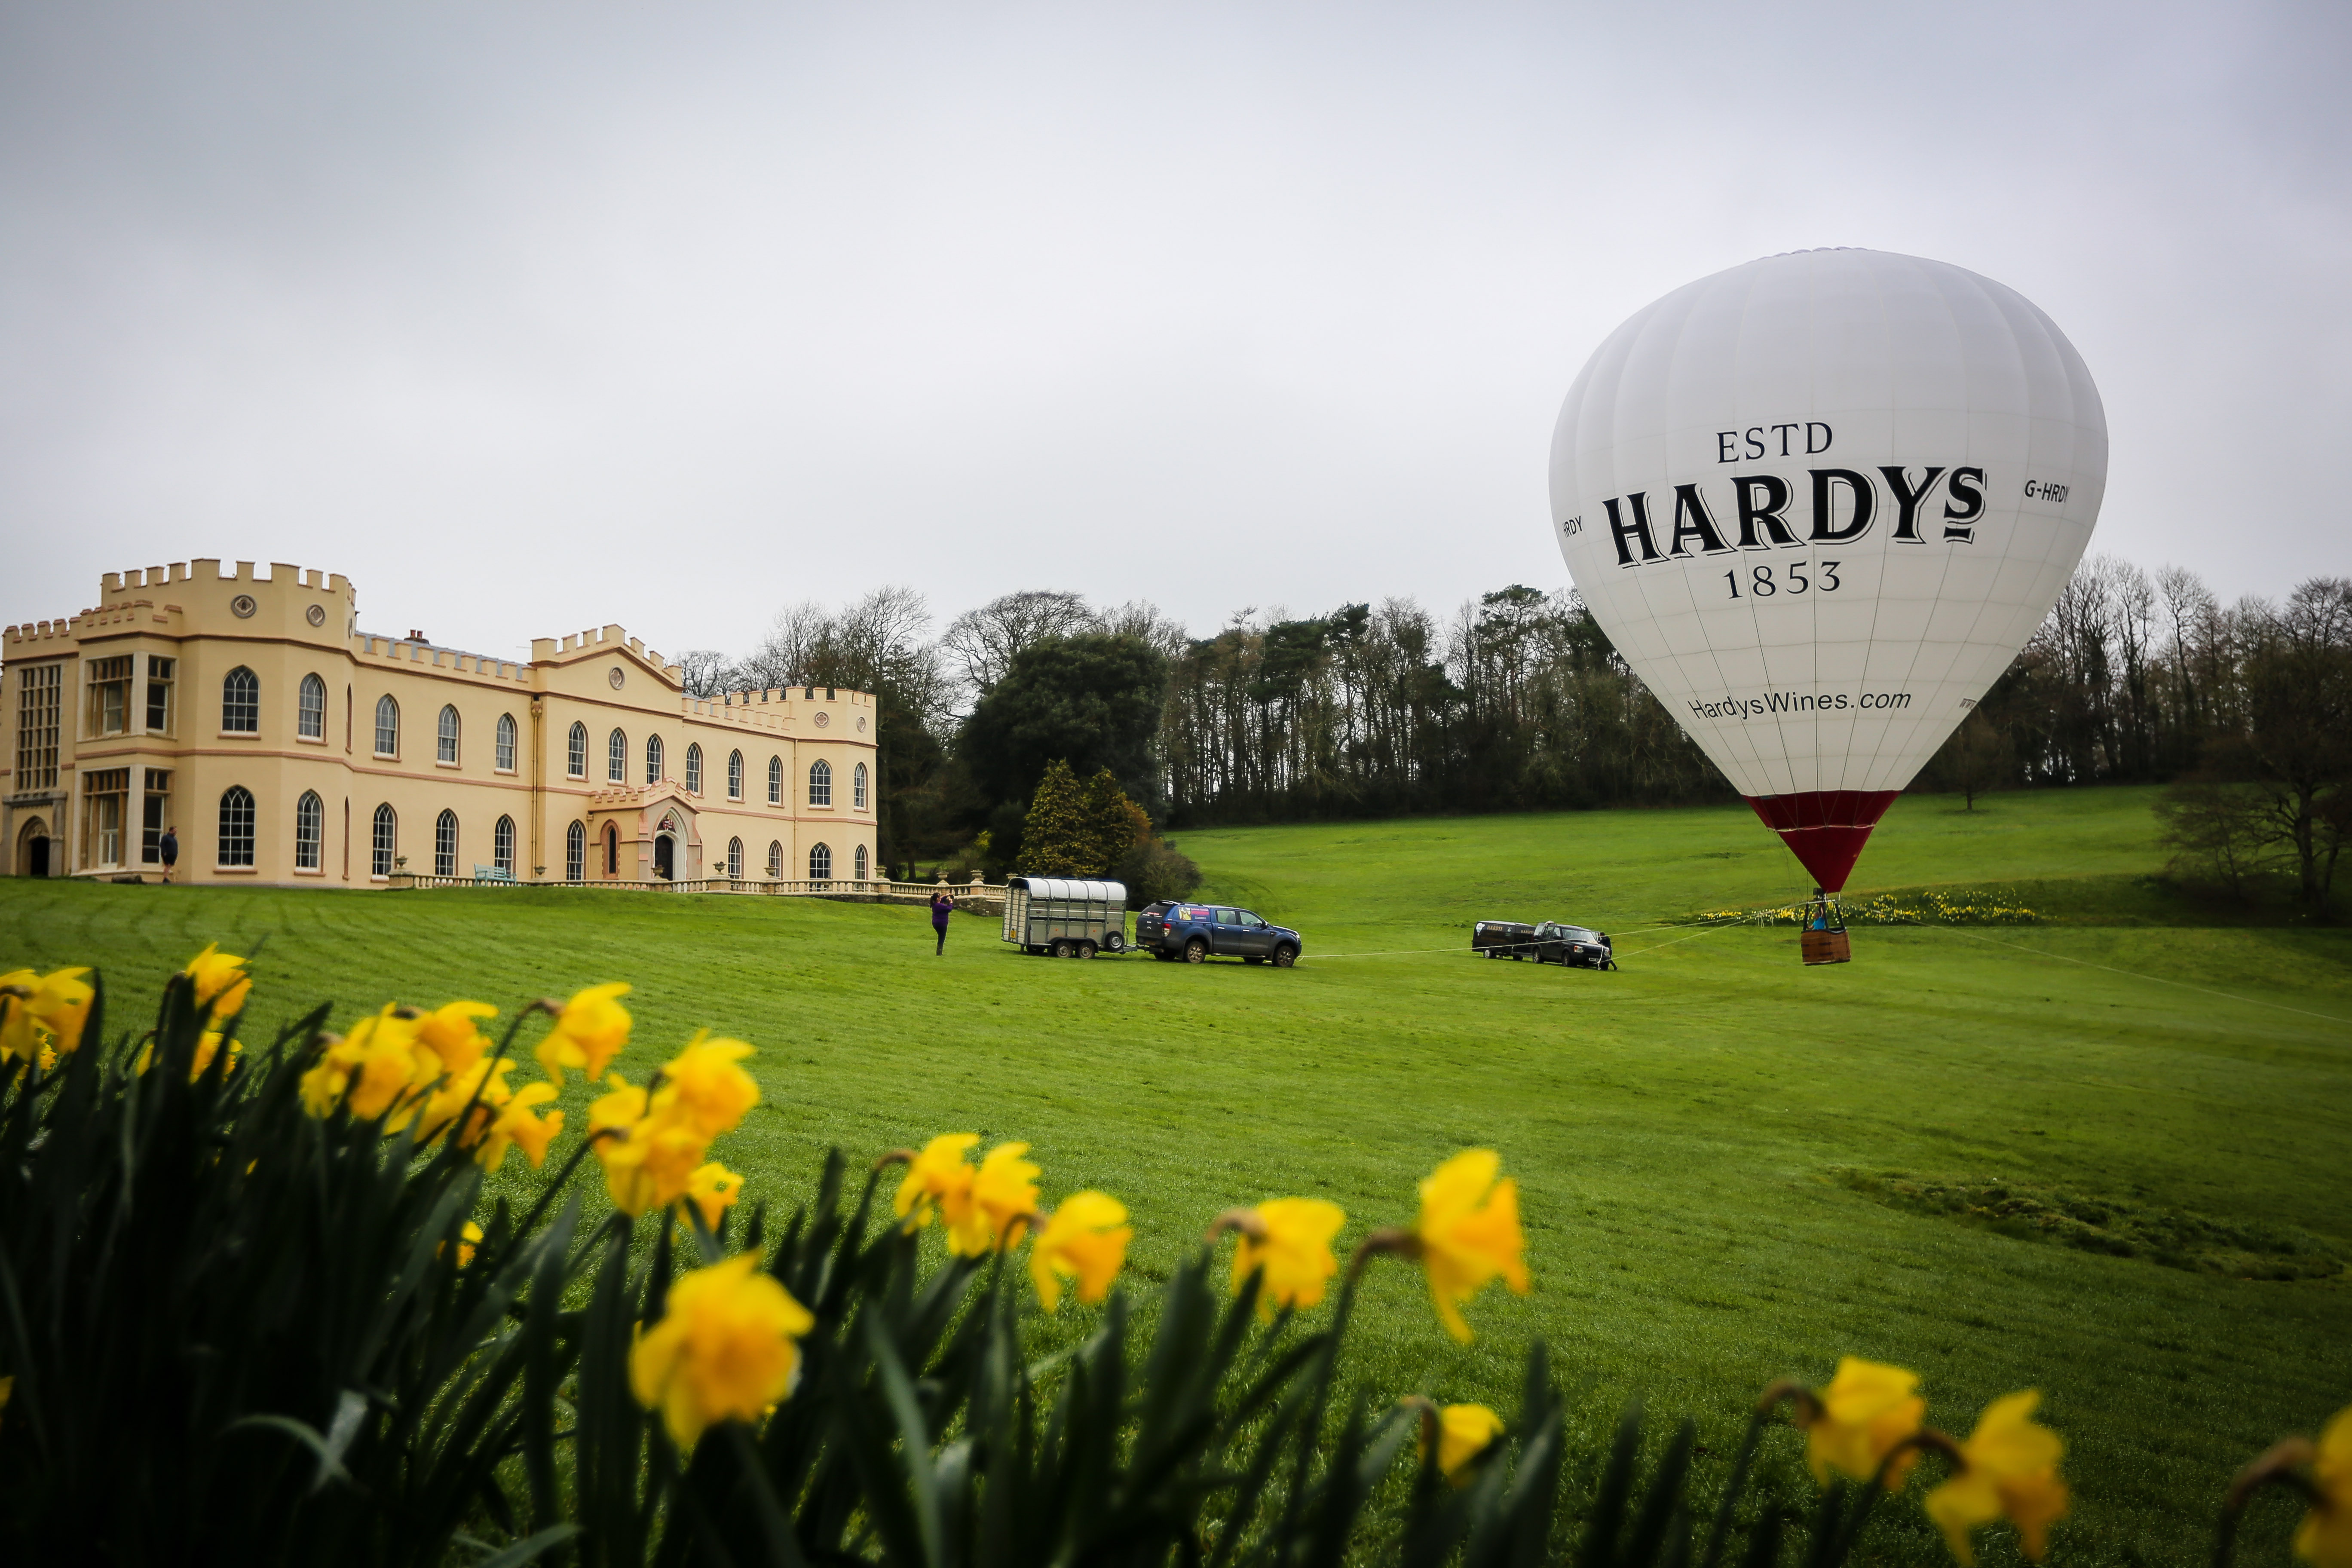 Tawstock court in the distance with hot air balloon on the lawn